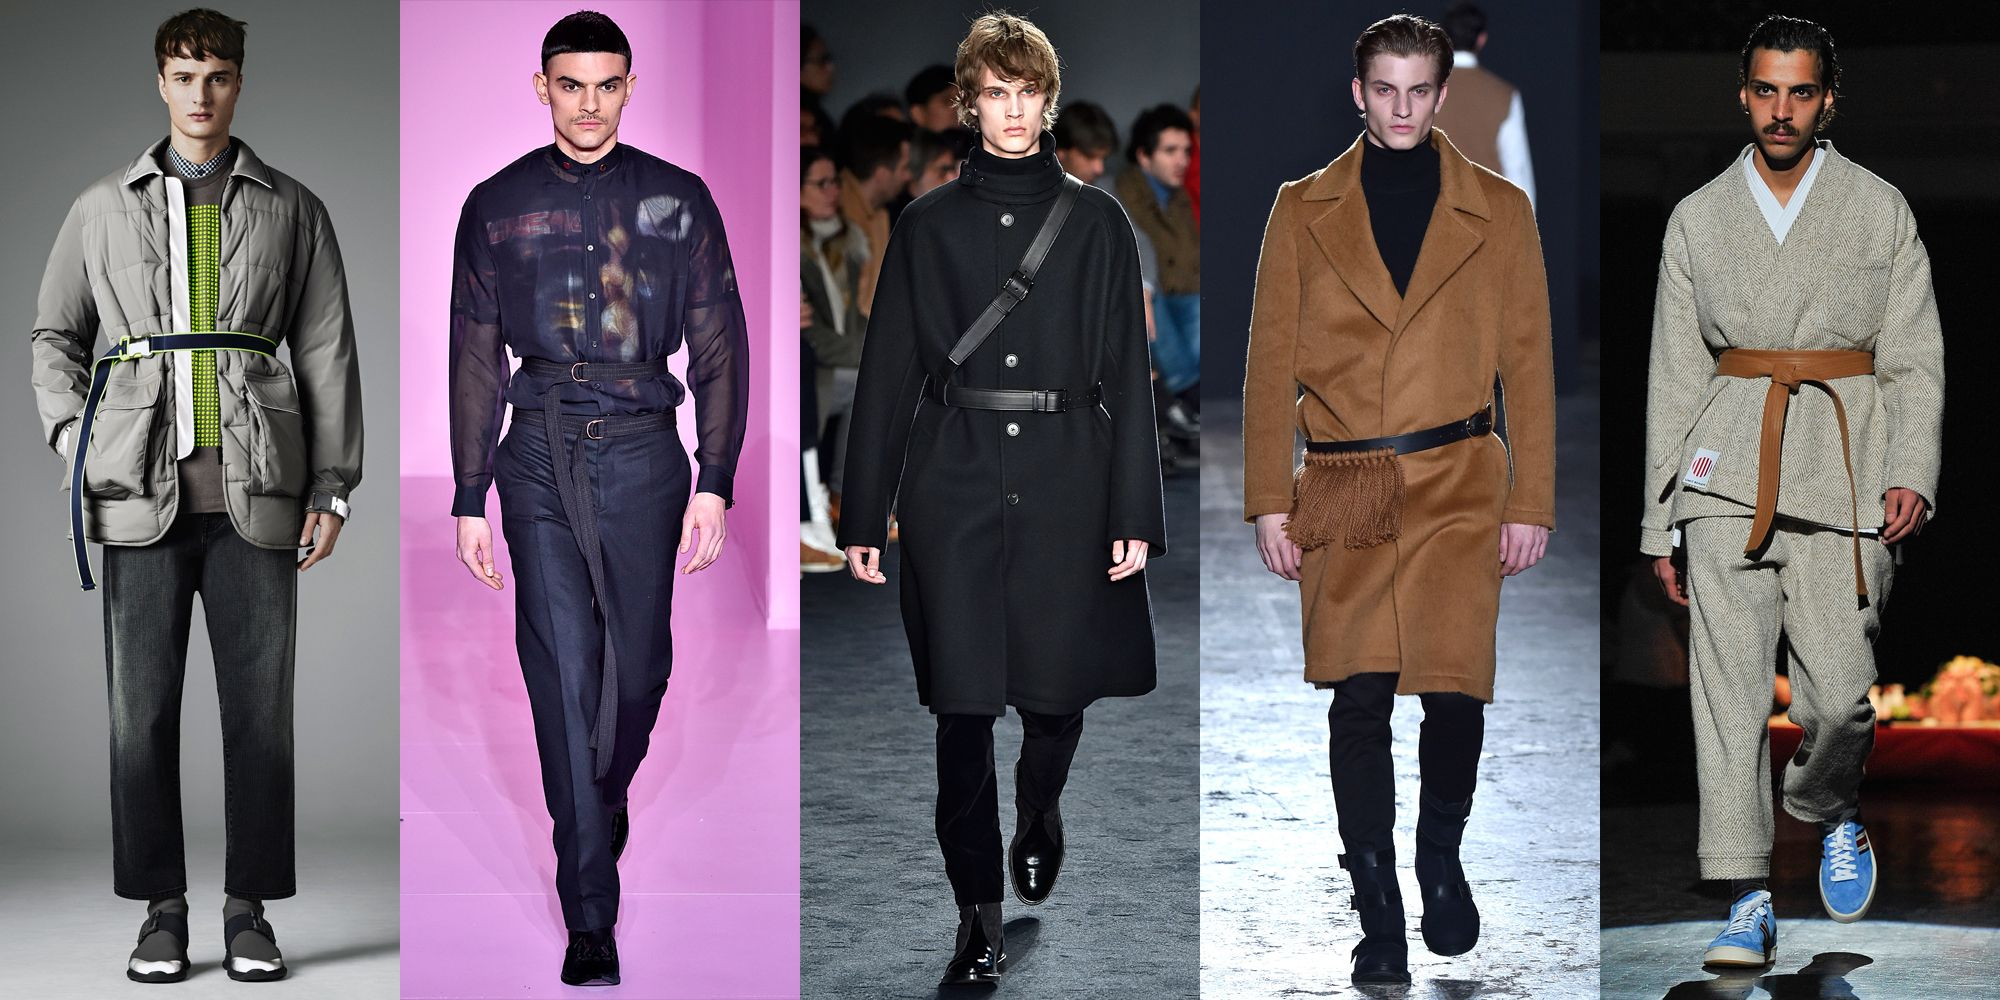 <p>We stole this one from the gals, but we're ready and willing to lend back the slimming accessory. </p><p><em><em>As seen at</em> Christopher Kane, Givenchy, Jil Sander, Ports 1961, and Umit Betnan.</em><br></p>